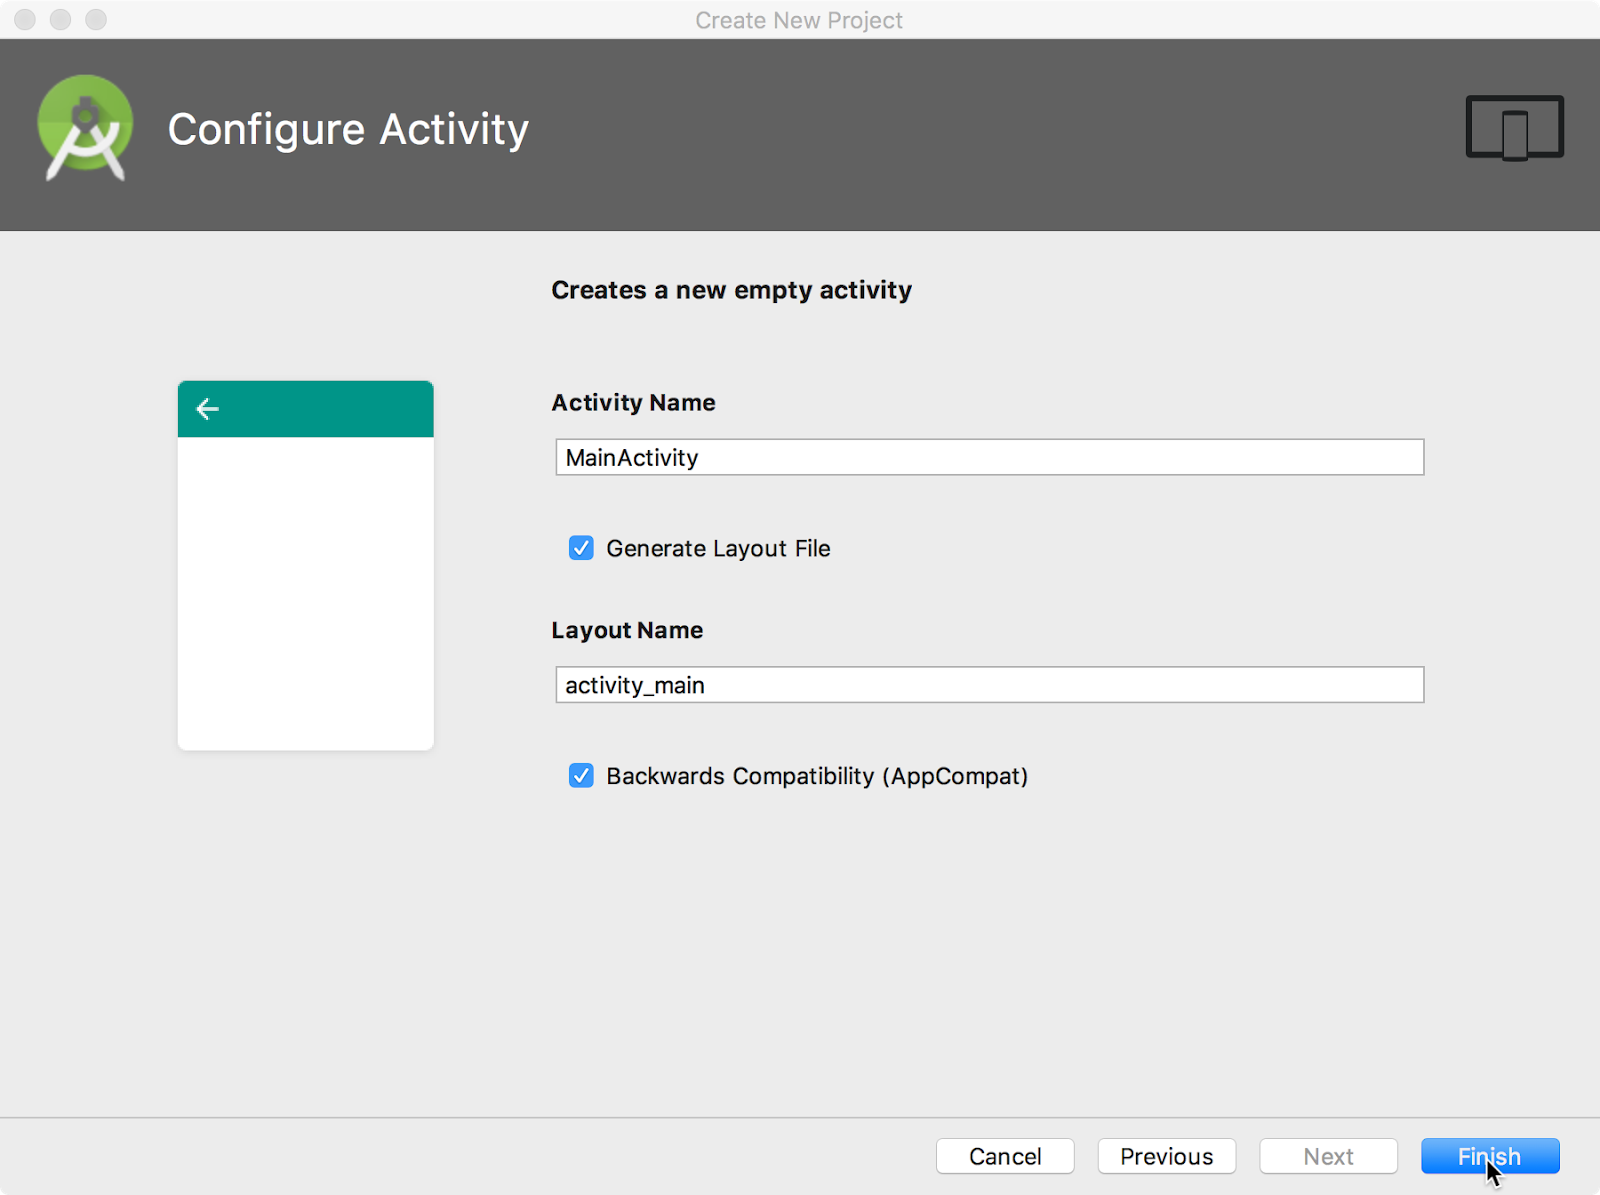 Configuring the Activity